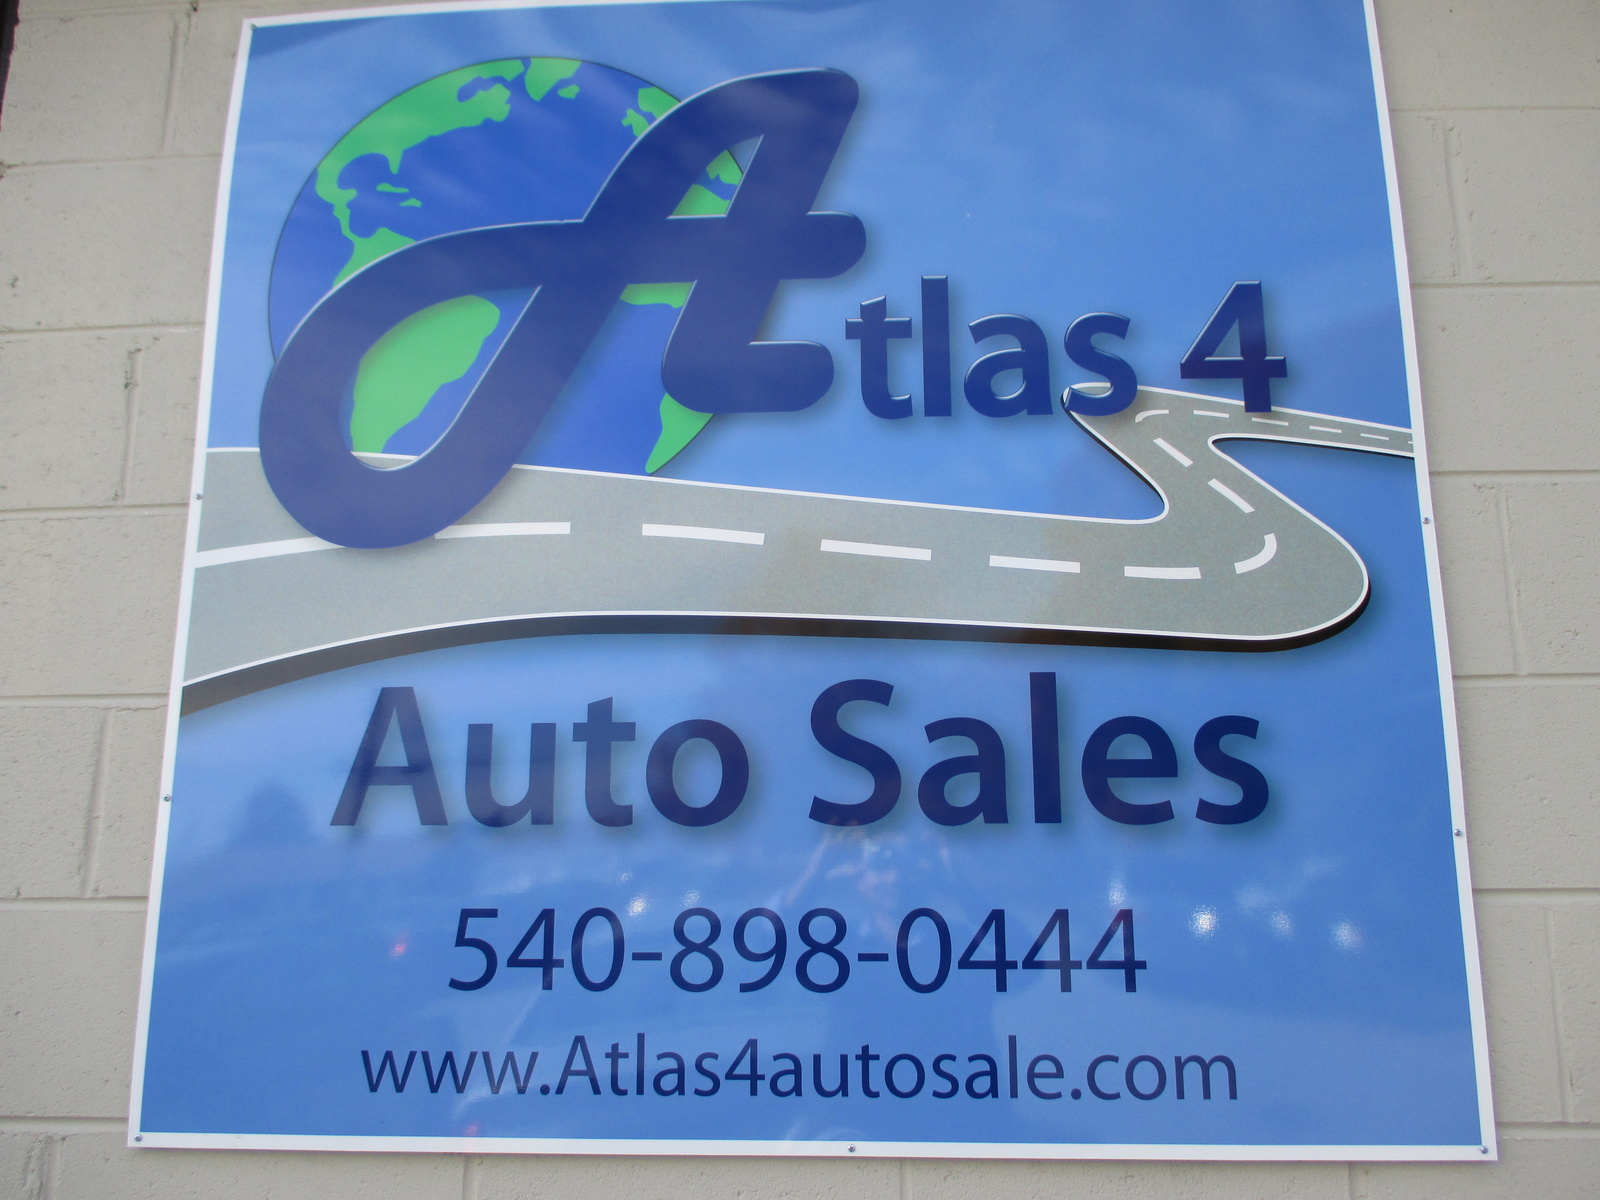 Atlas 4 Auto Sales Fredericksburg Va Read Consumer Reviews